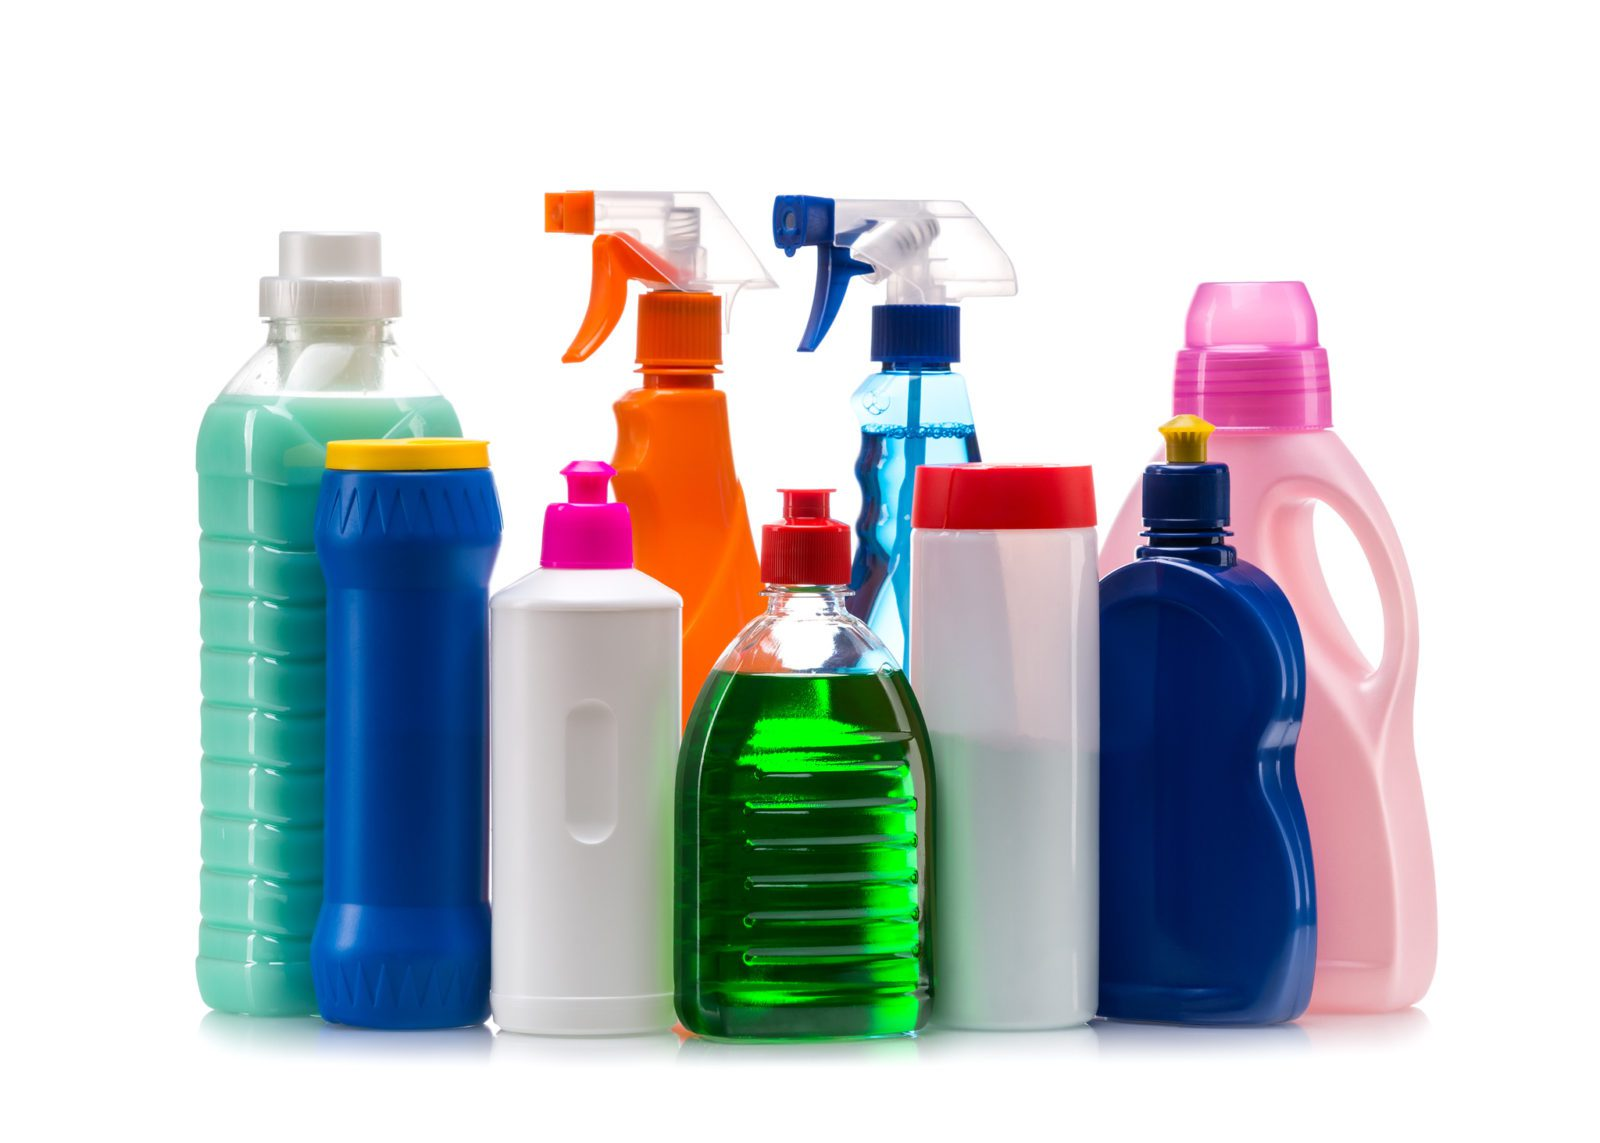 Cleaning products in plastic containers